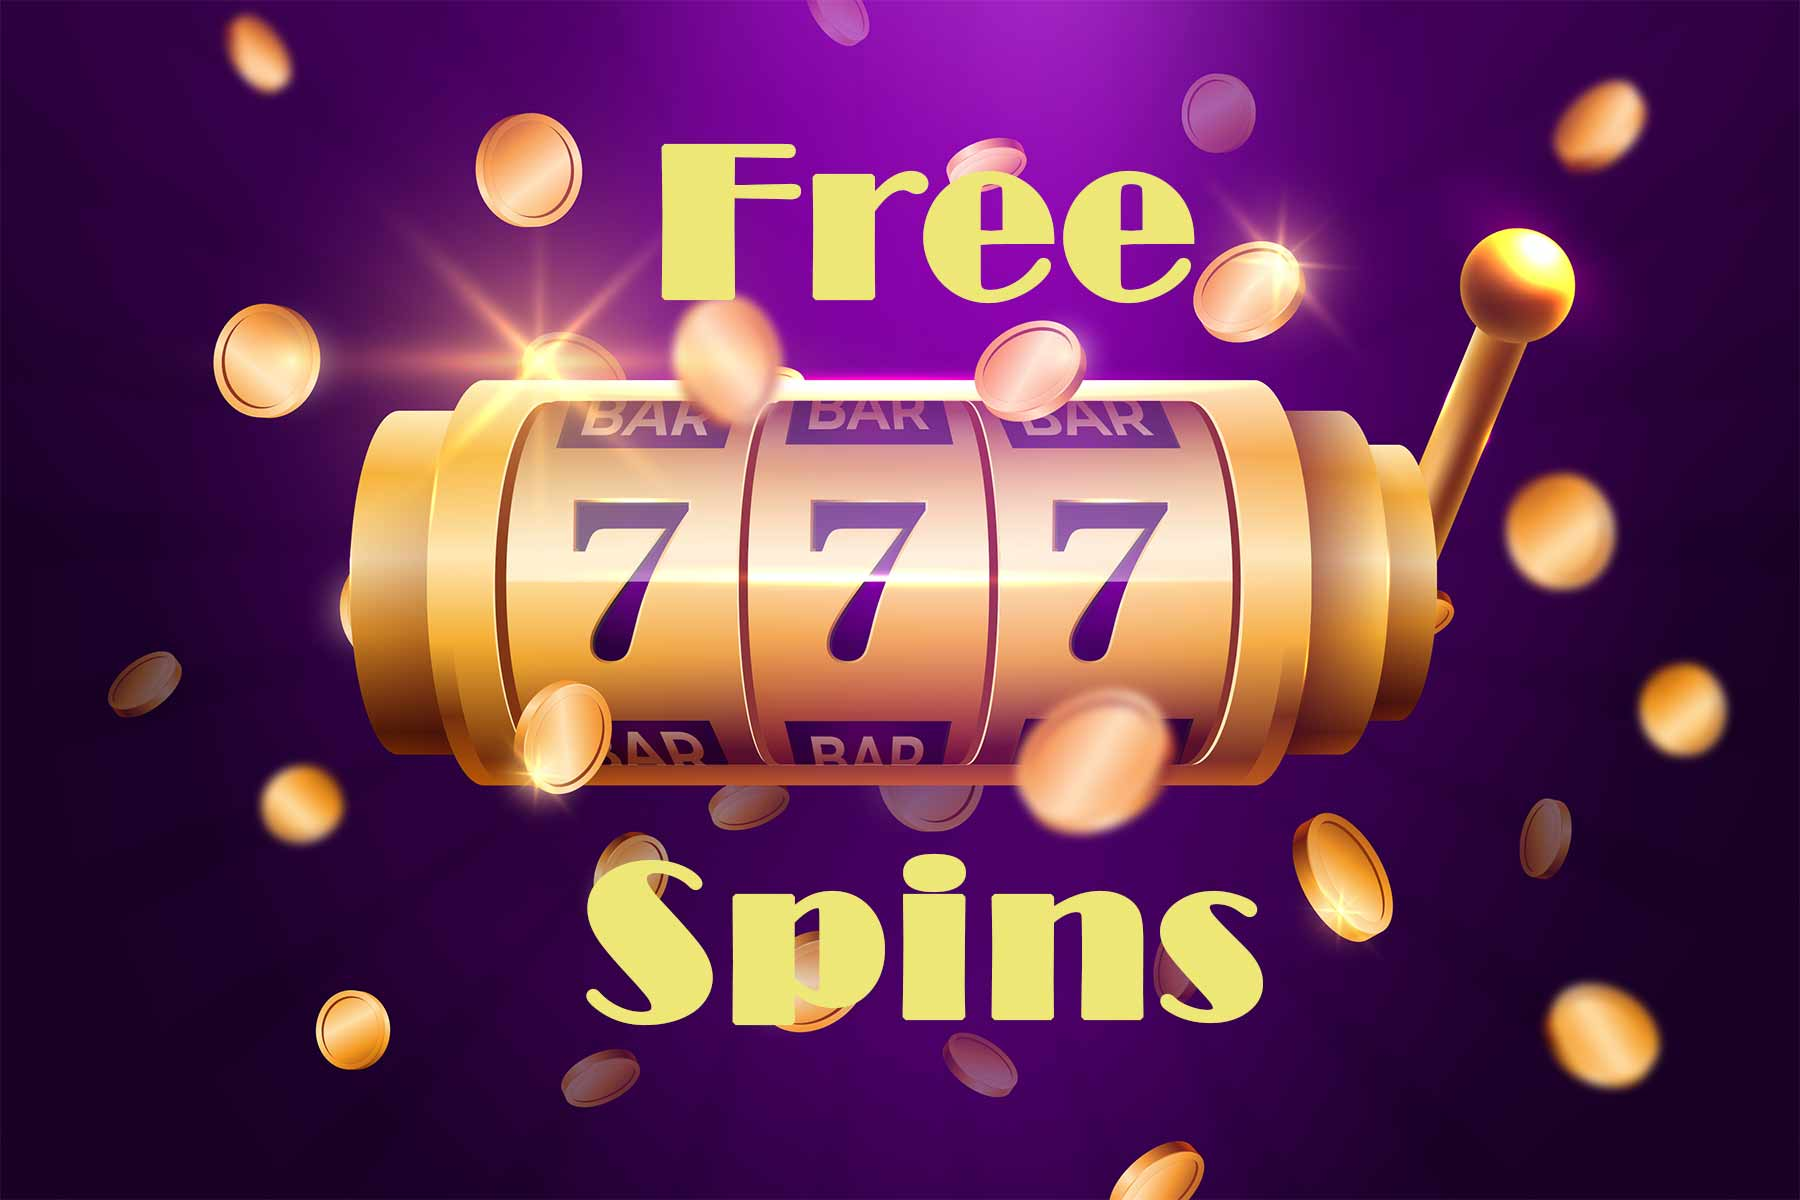 Are Free Spins the best bonuses you can get in online slots?